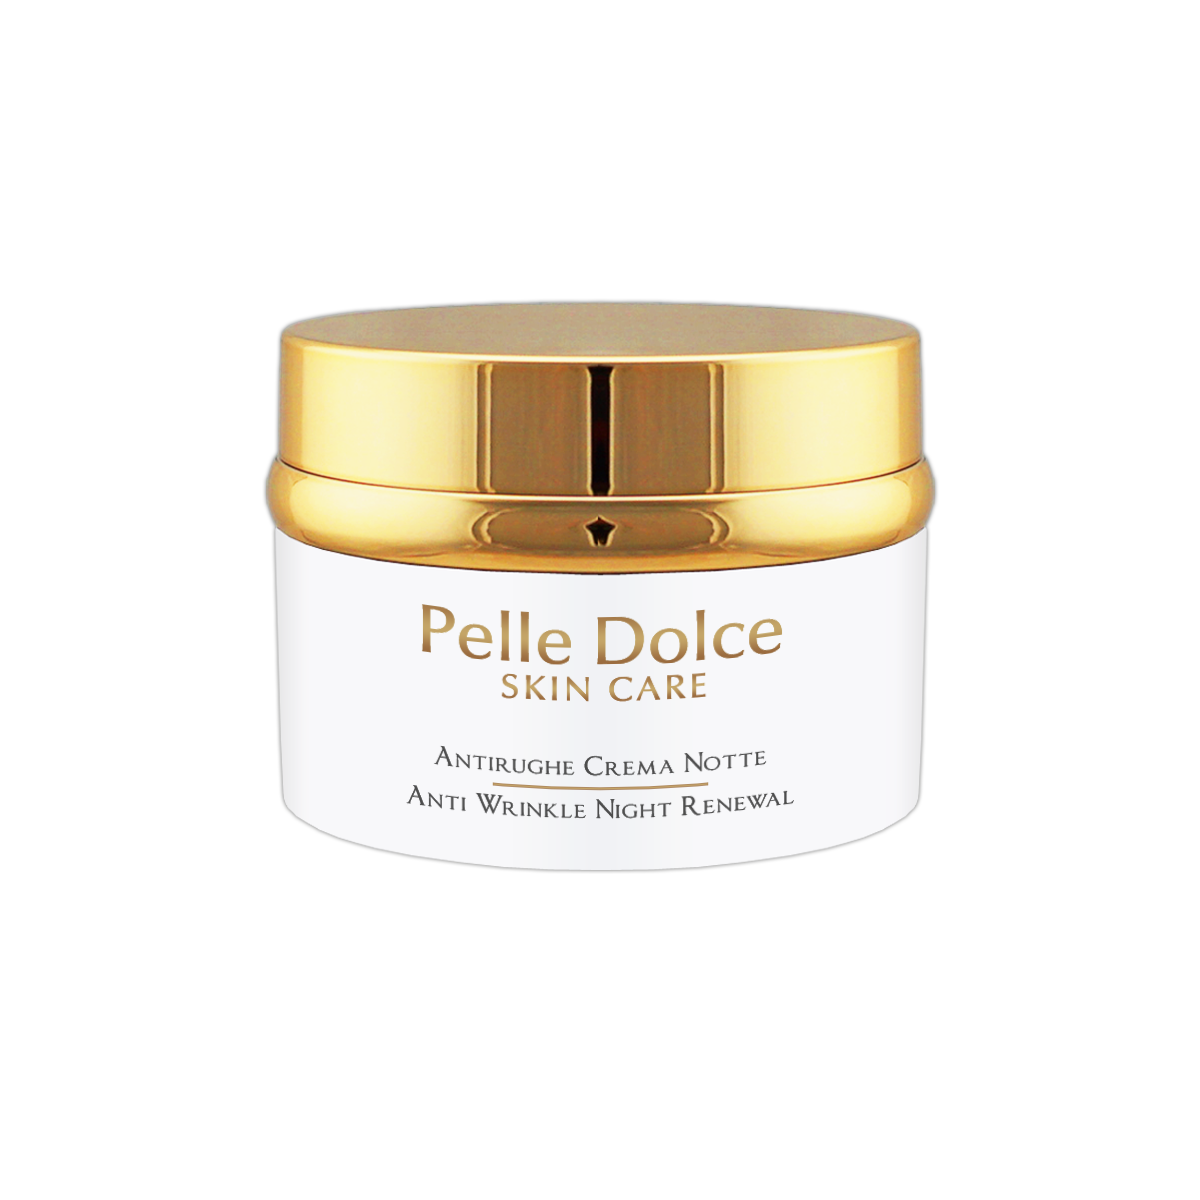 pelle-dolce-anti-wrinkle-night-renewal-cream